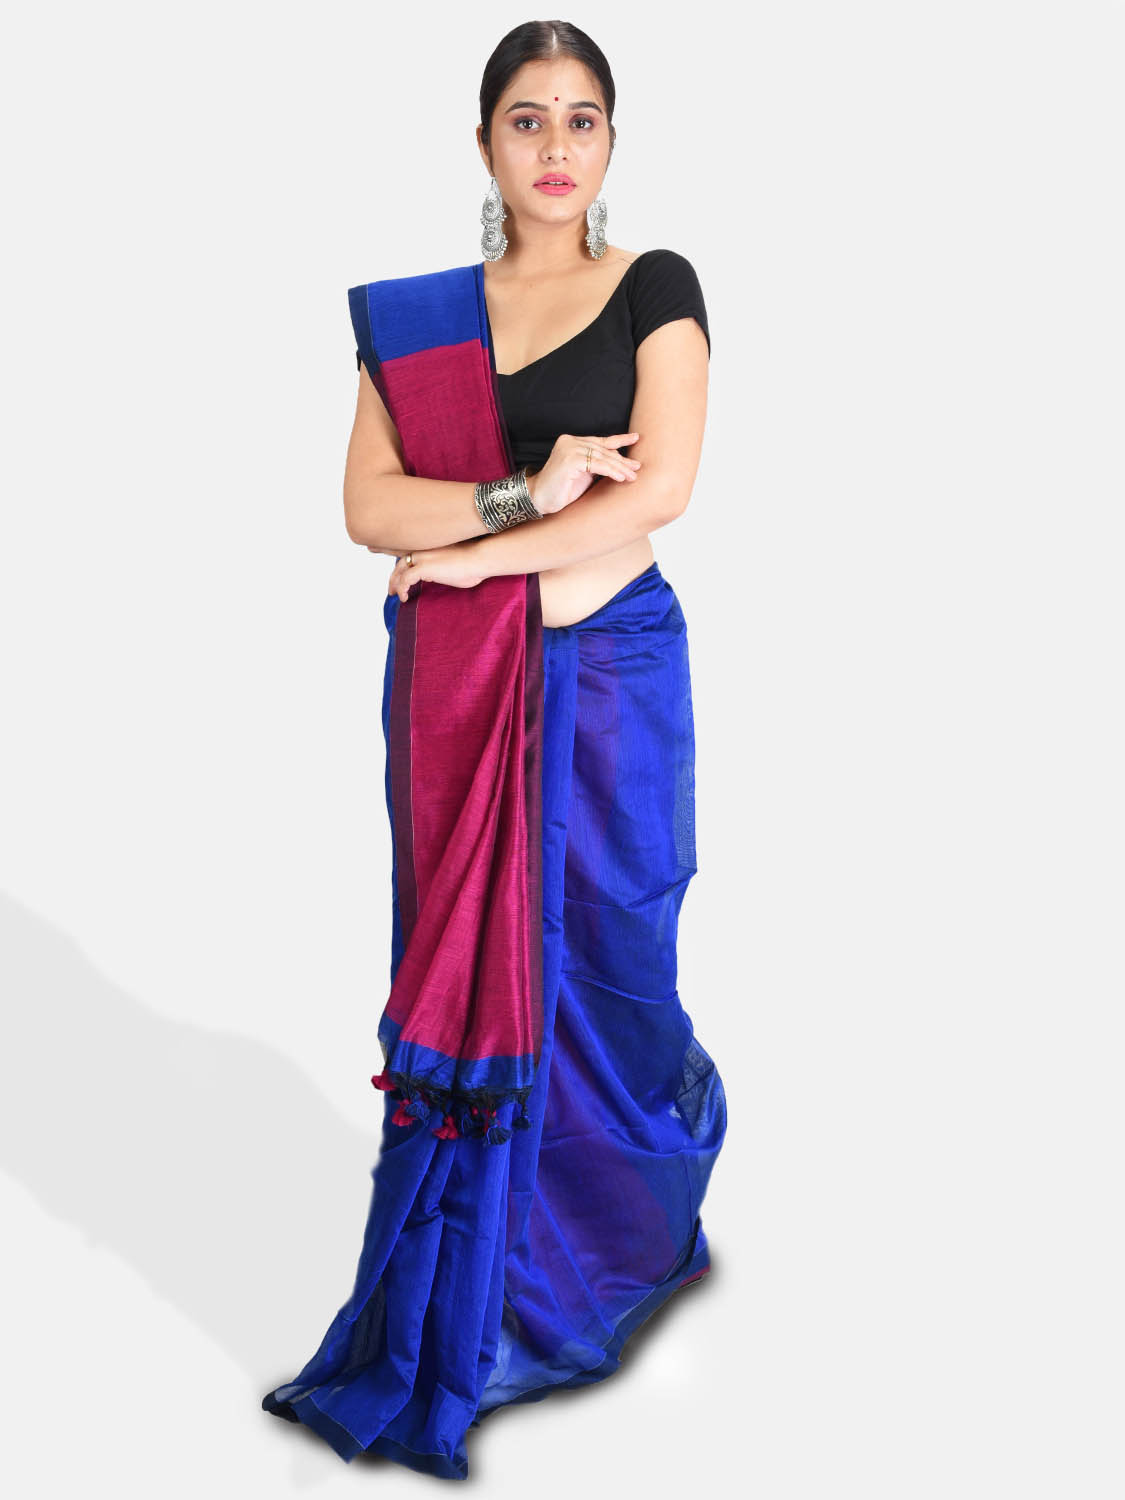 DESH BIDESH Women`s Cotton Silk and Bengal Soft Khadi Cotton Mix Ghicha Handloom Saree With Blouse Piece (Blue Deep Pink)